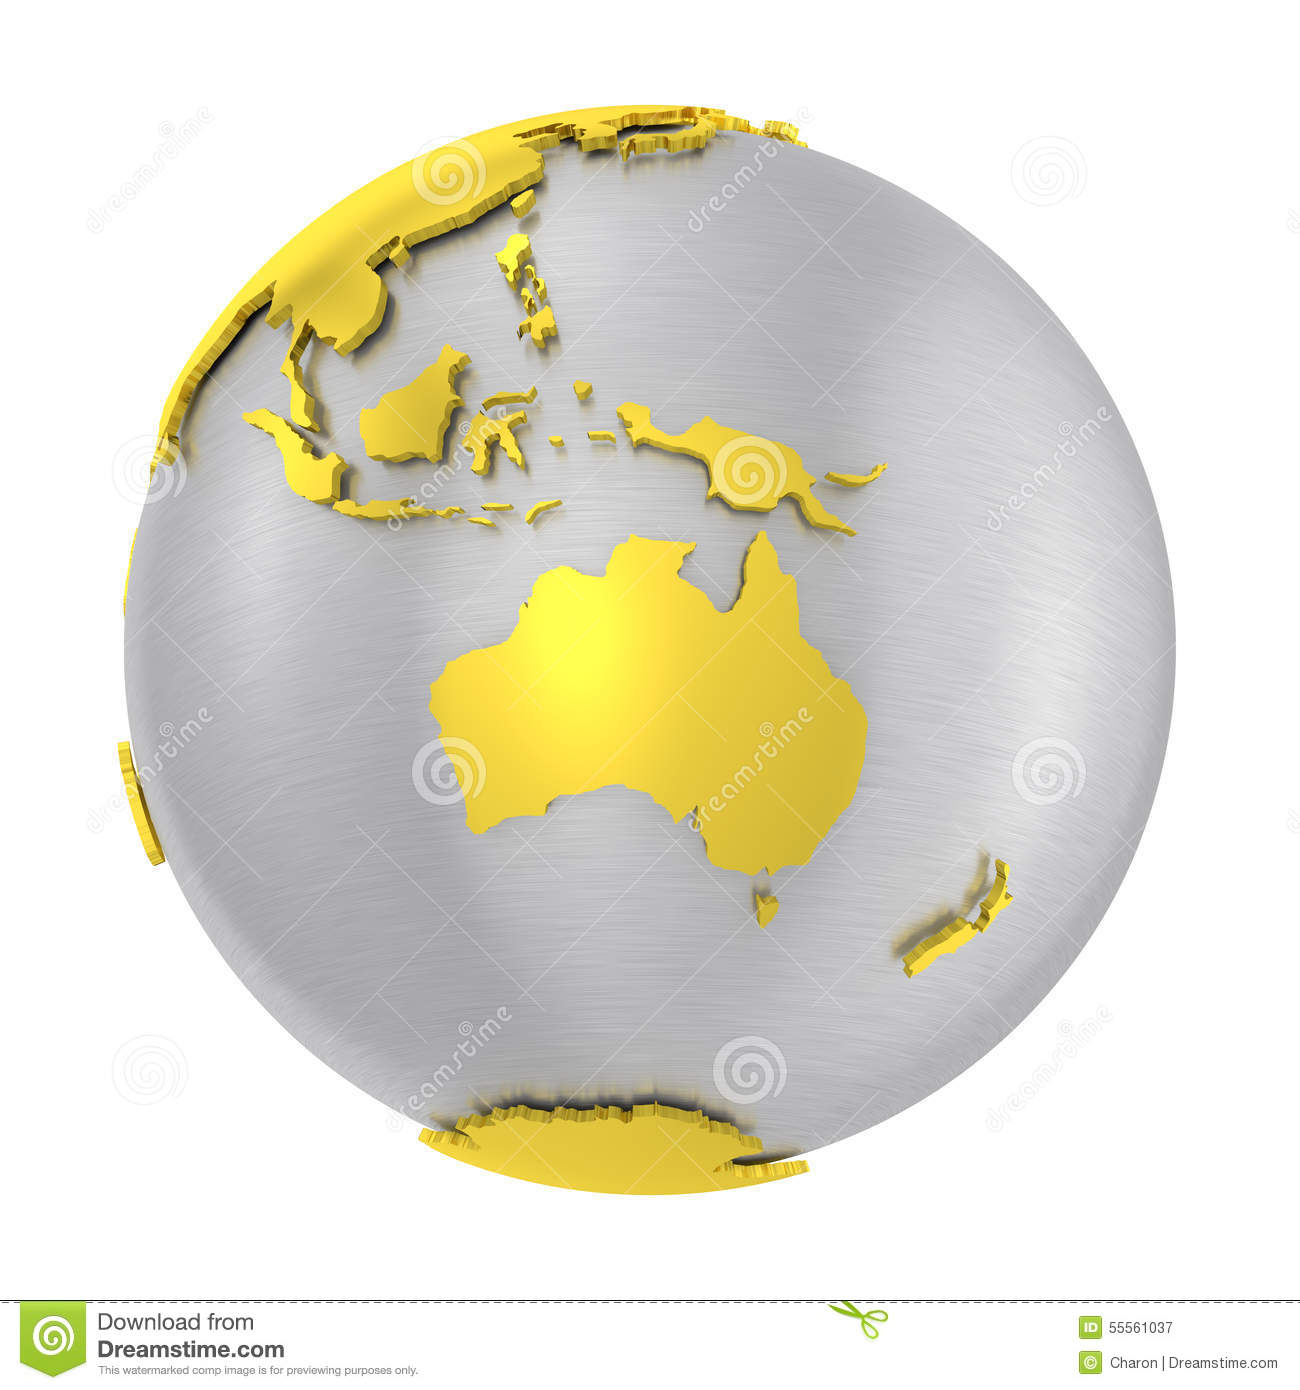 Brushed Steel 3D Globe Gold Earth Crust Stock Photo.